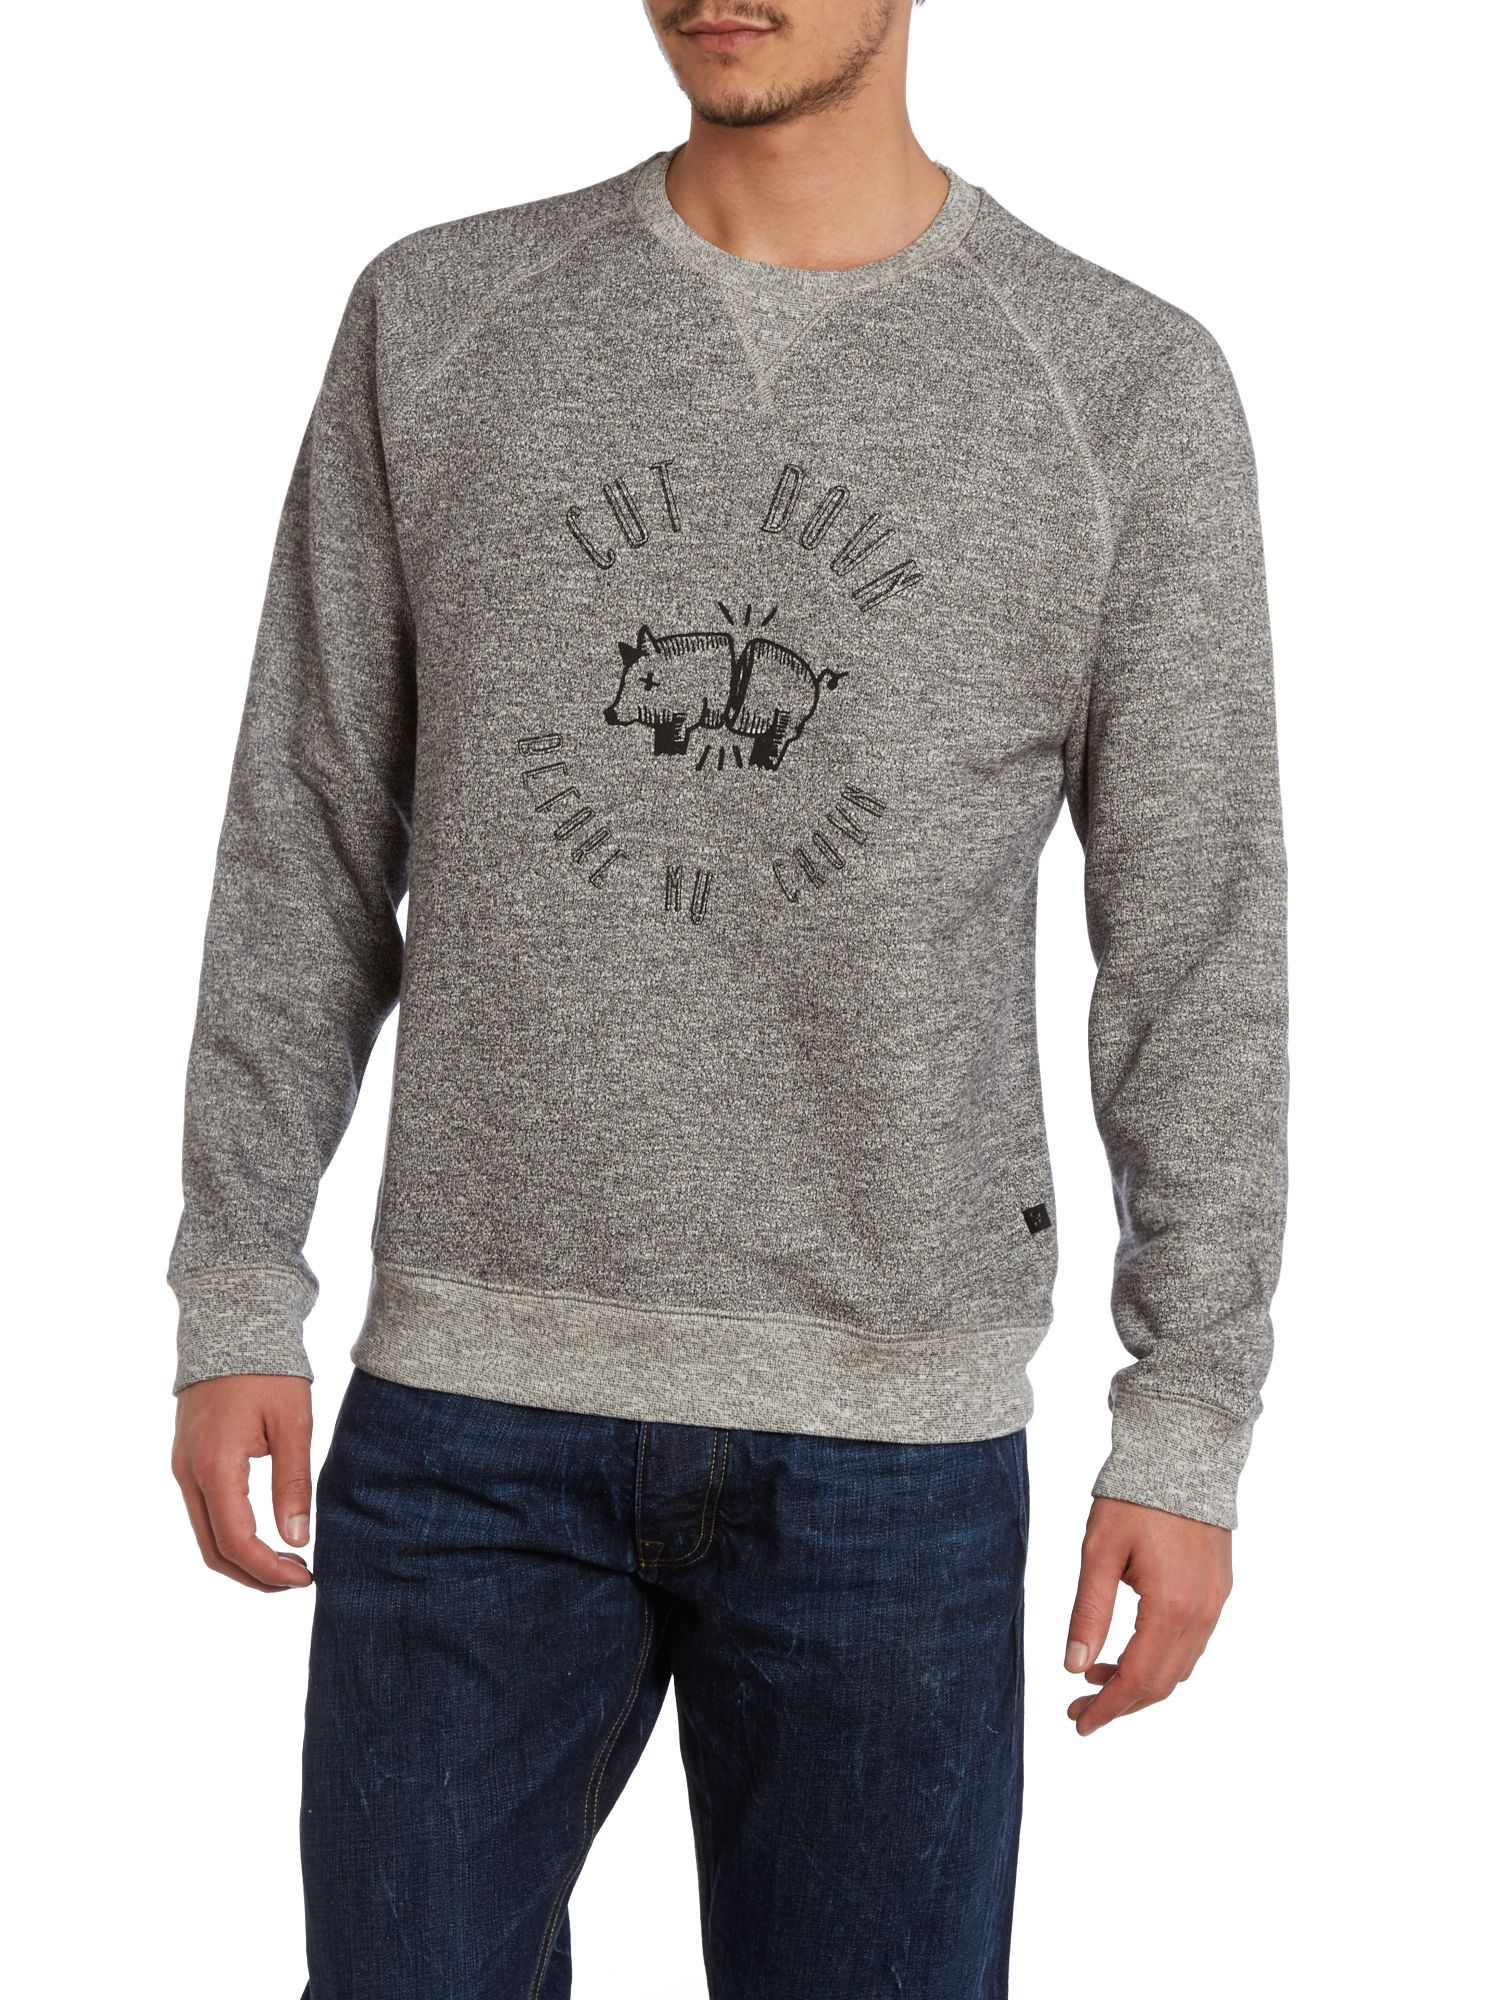 Crown print crew neck sweatshirt